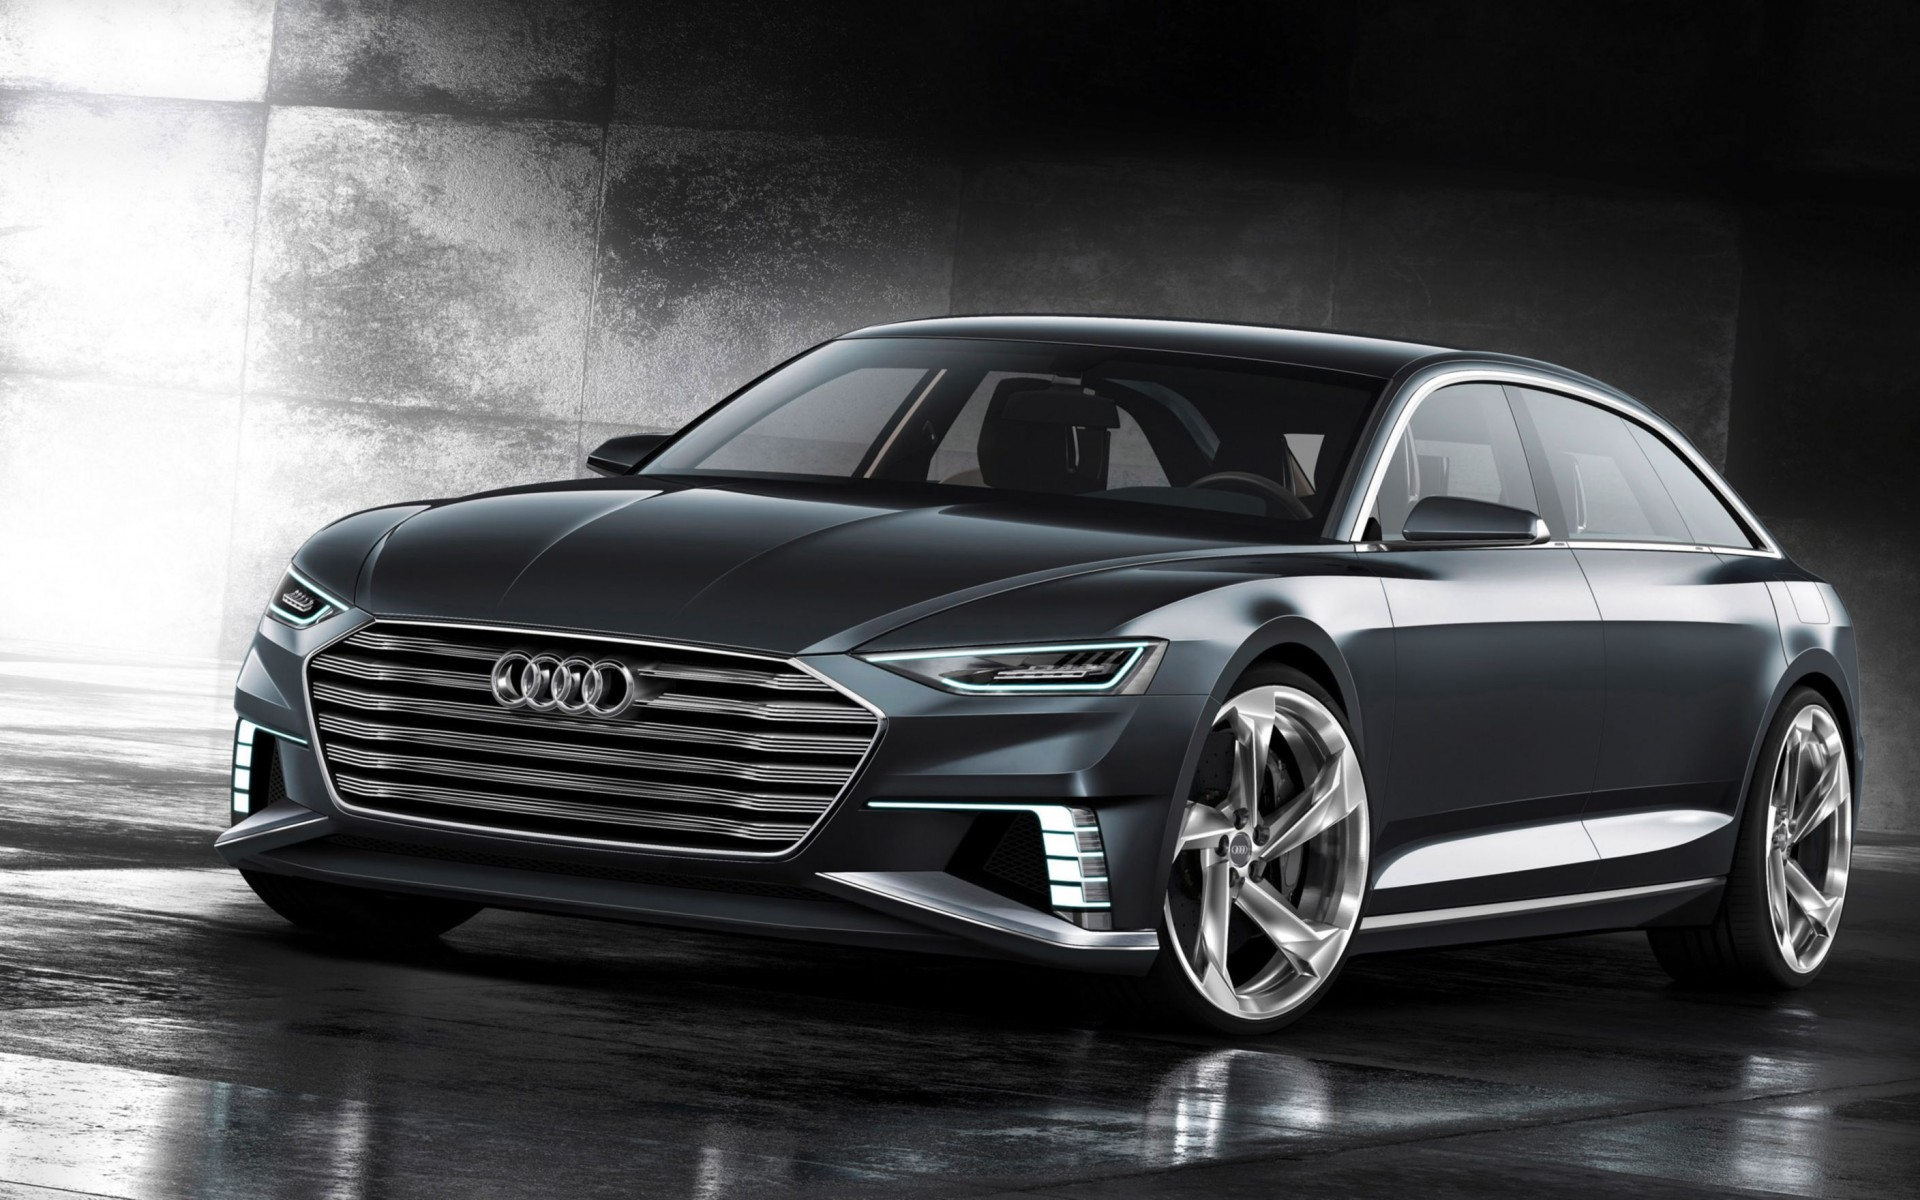 2015 Audi Prologue Avant Concept Wide Wallpaper